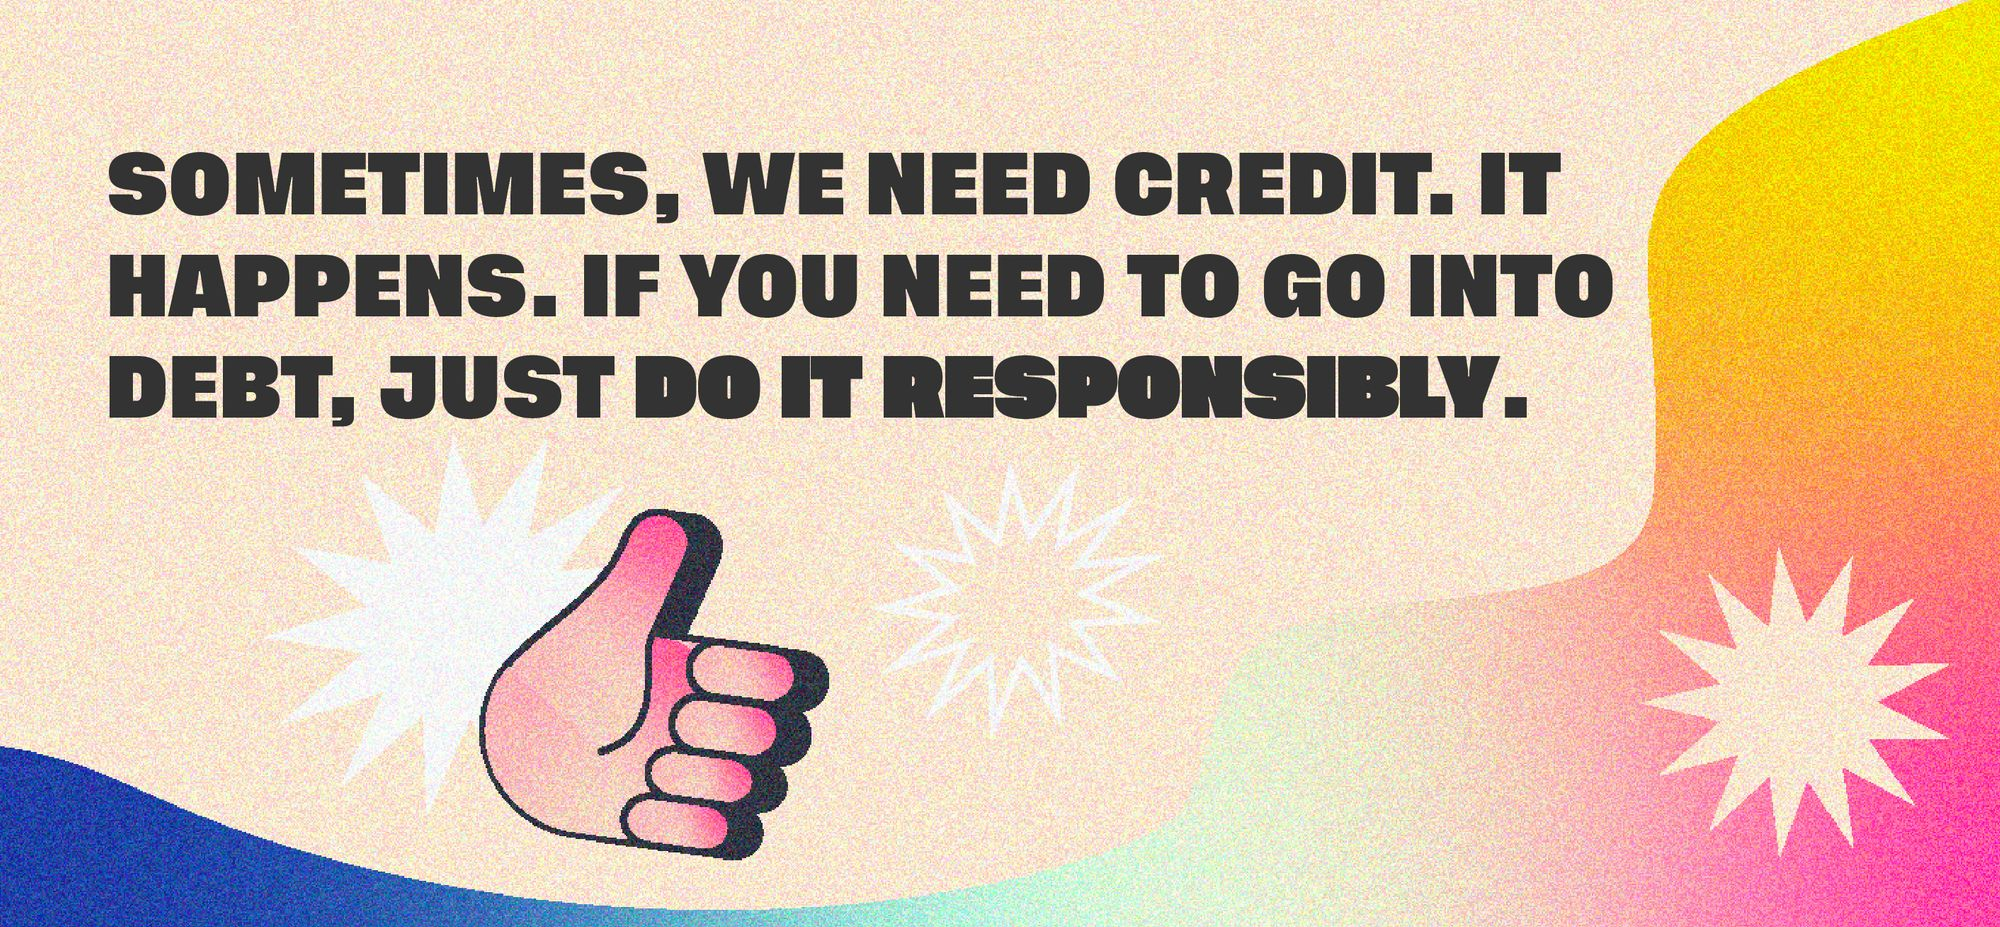 Sometimes, we need credit. It happens. If you need to go into debt, just do it responsibly.